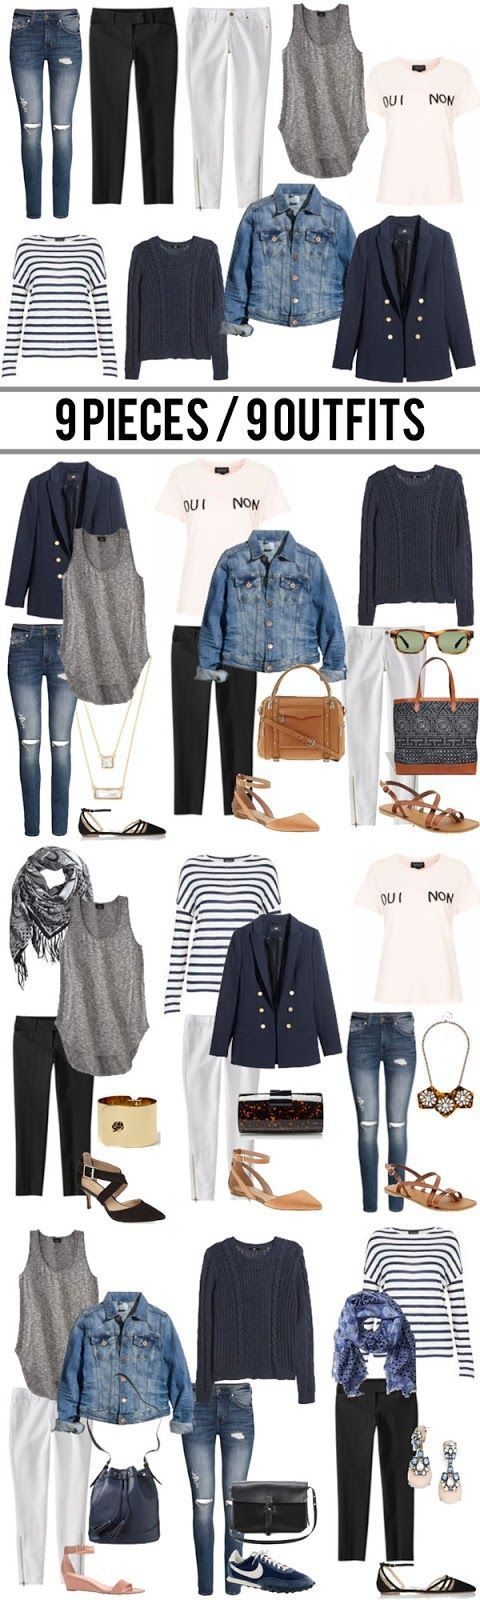 1000 ideas about winter travel outfit on pinterest for Fall break vacation ideas